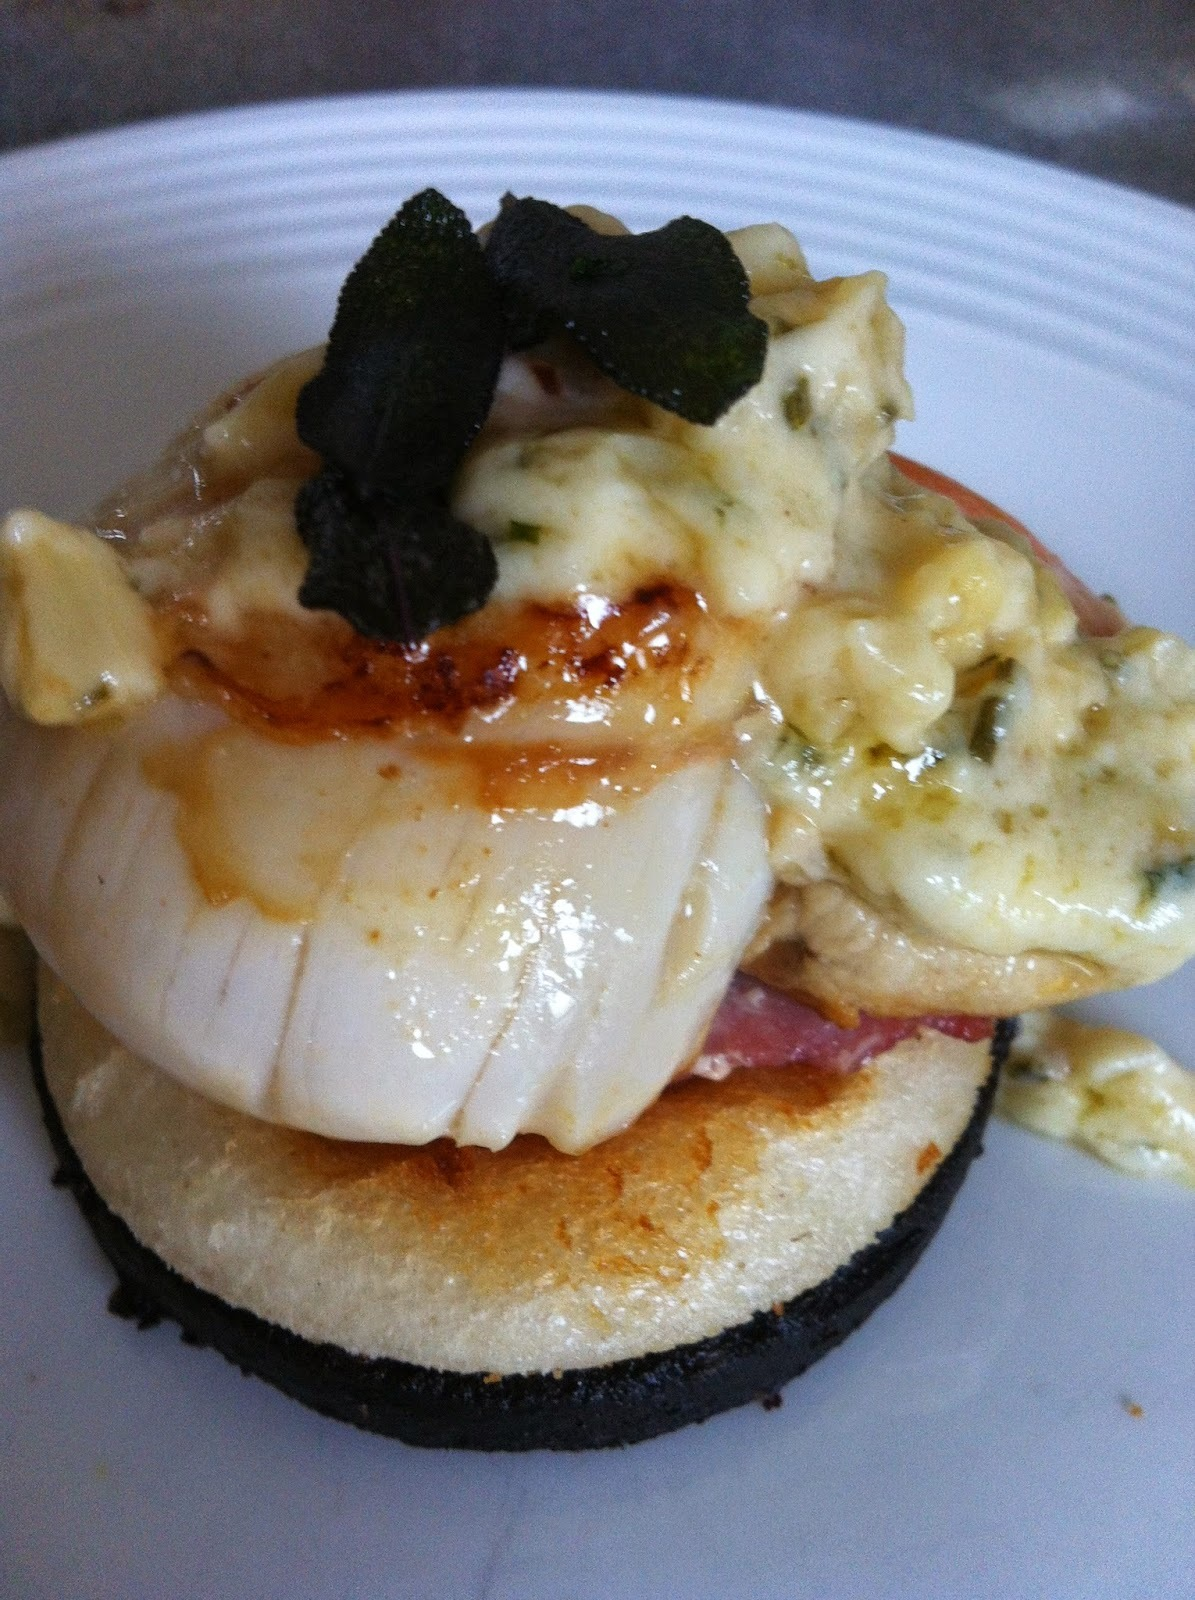 Scallops with black pudding in a creamy garlic and white wine reduction